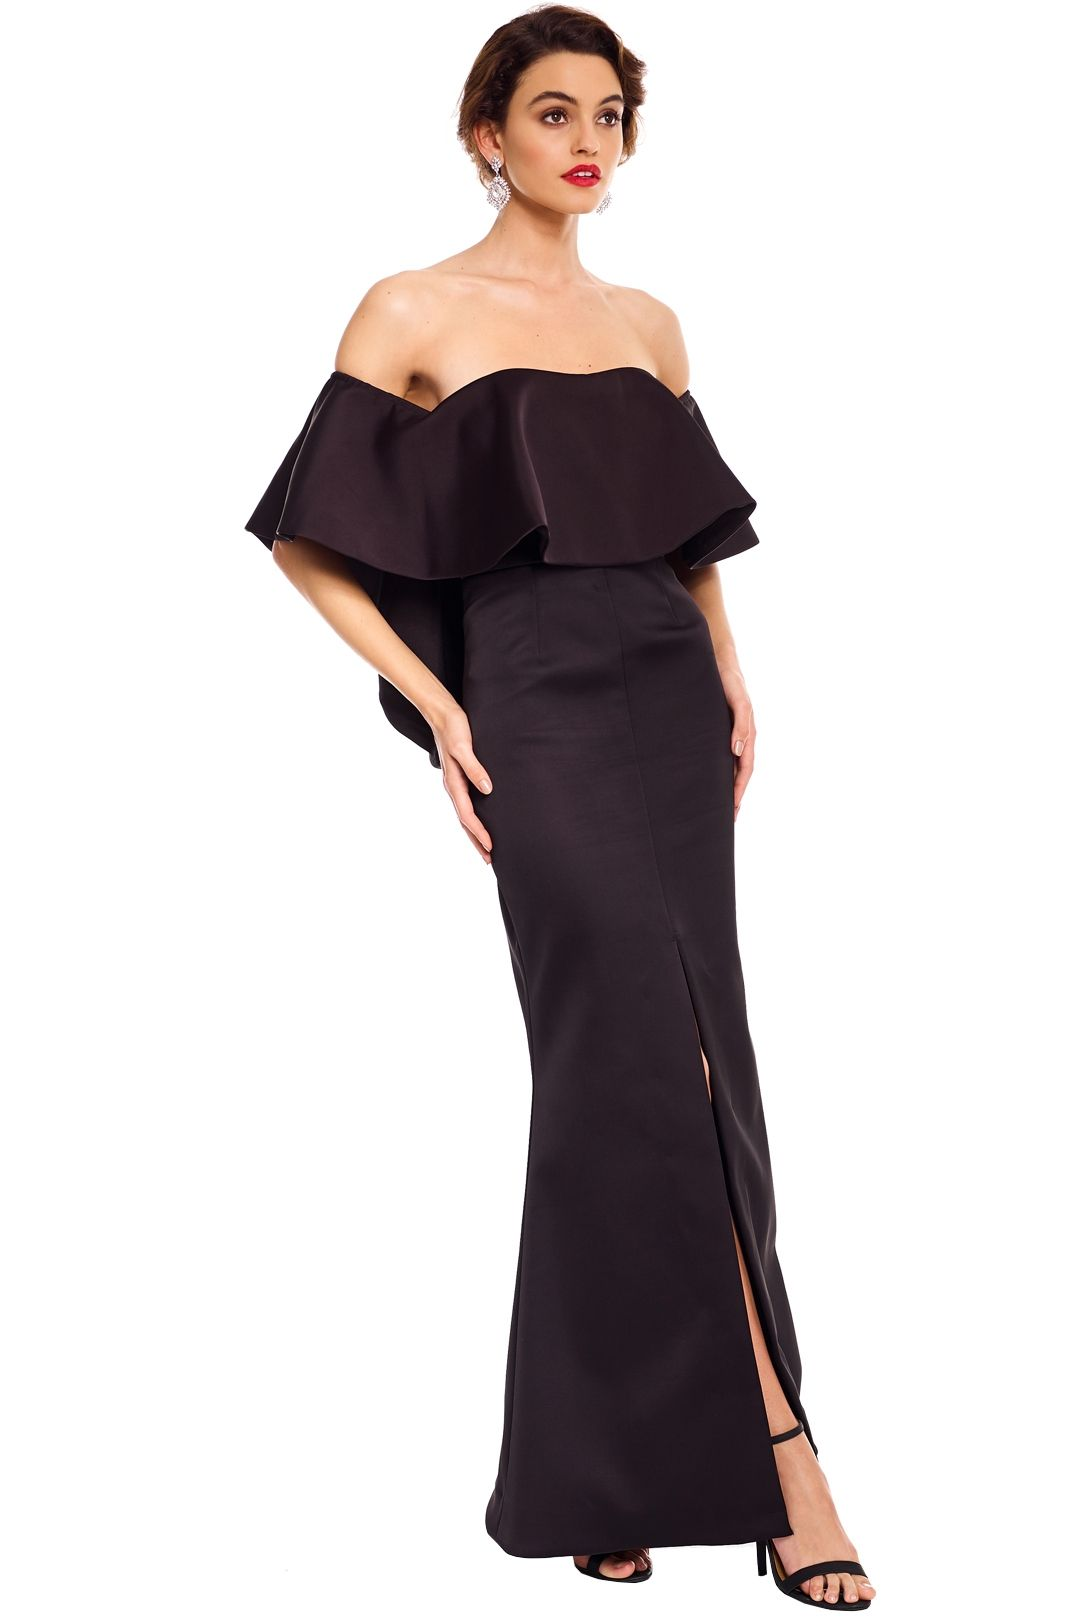 Talulah - Without You Gown - Black - Side